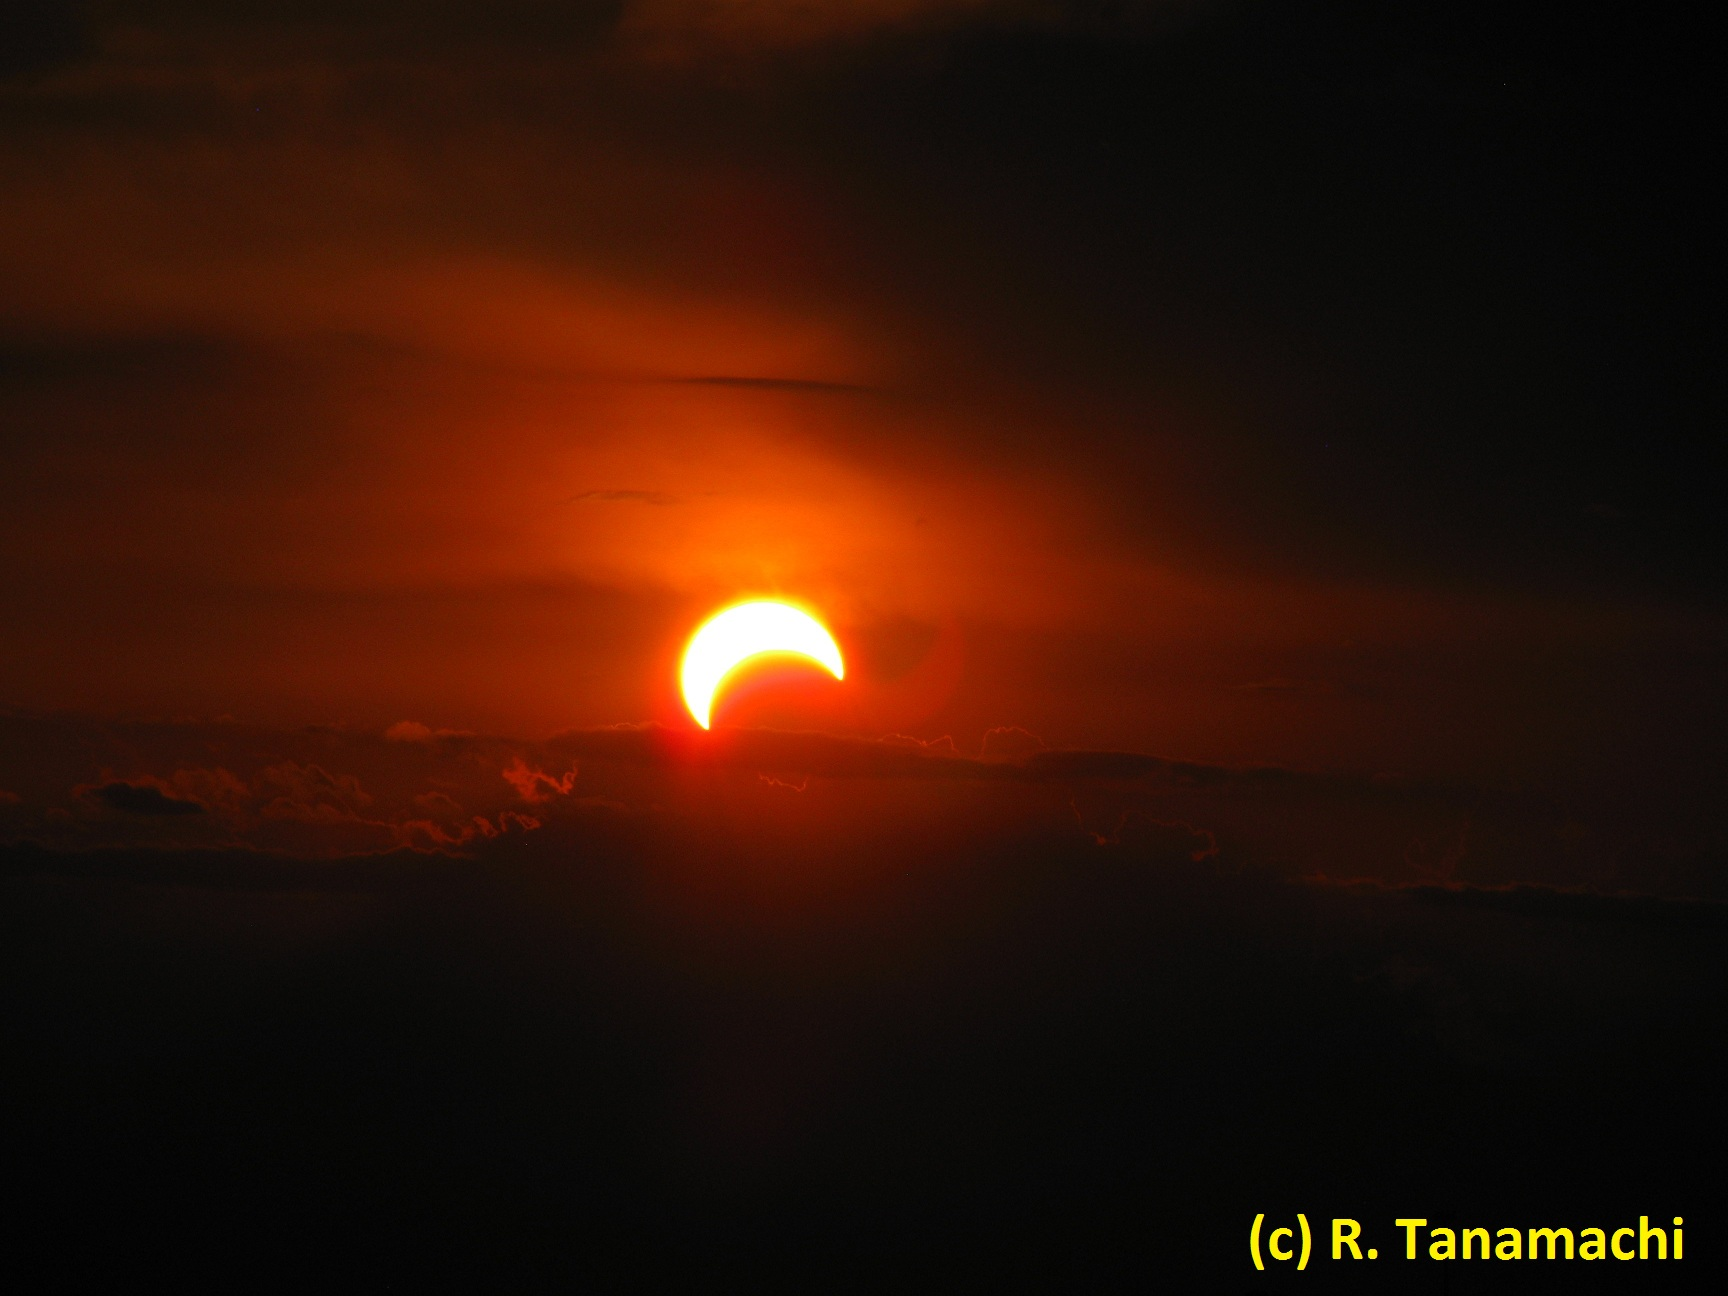 The sun, about 50% covered by the moon's silhouette